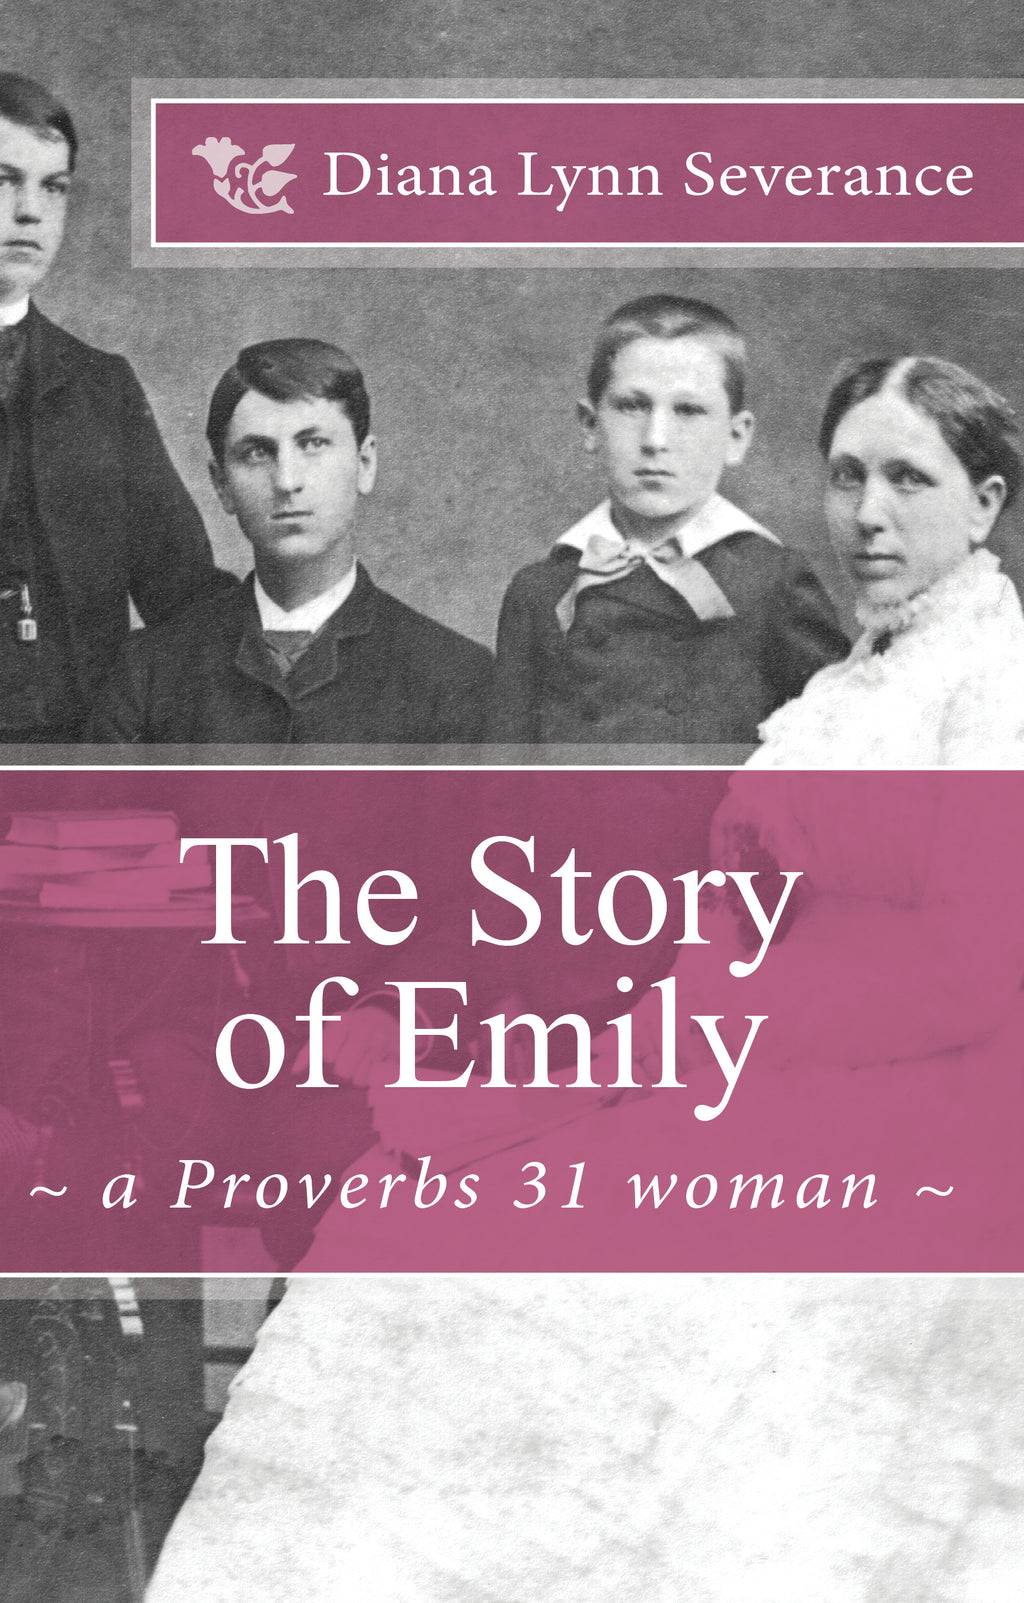 The Story of Emily:  A Proverbs 31 Woman